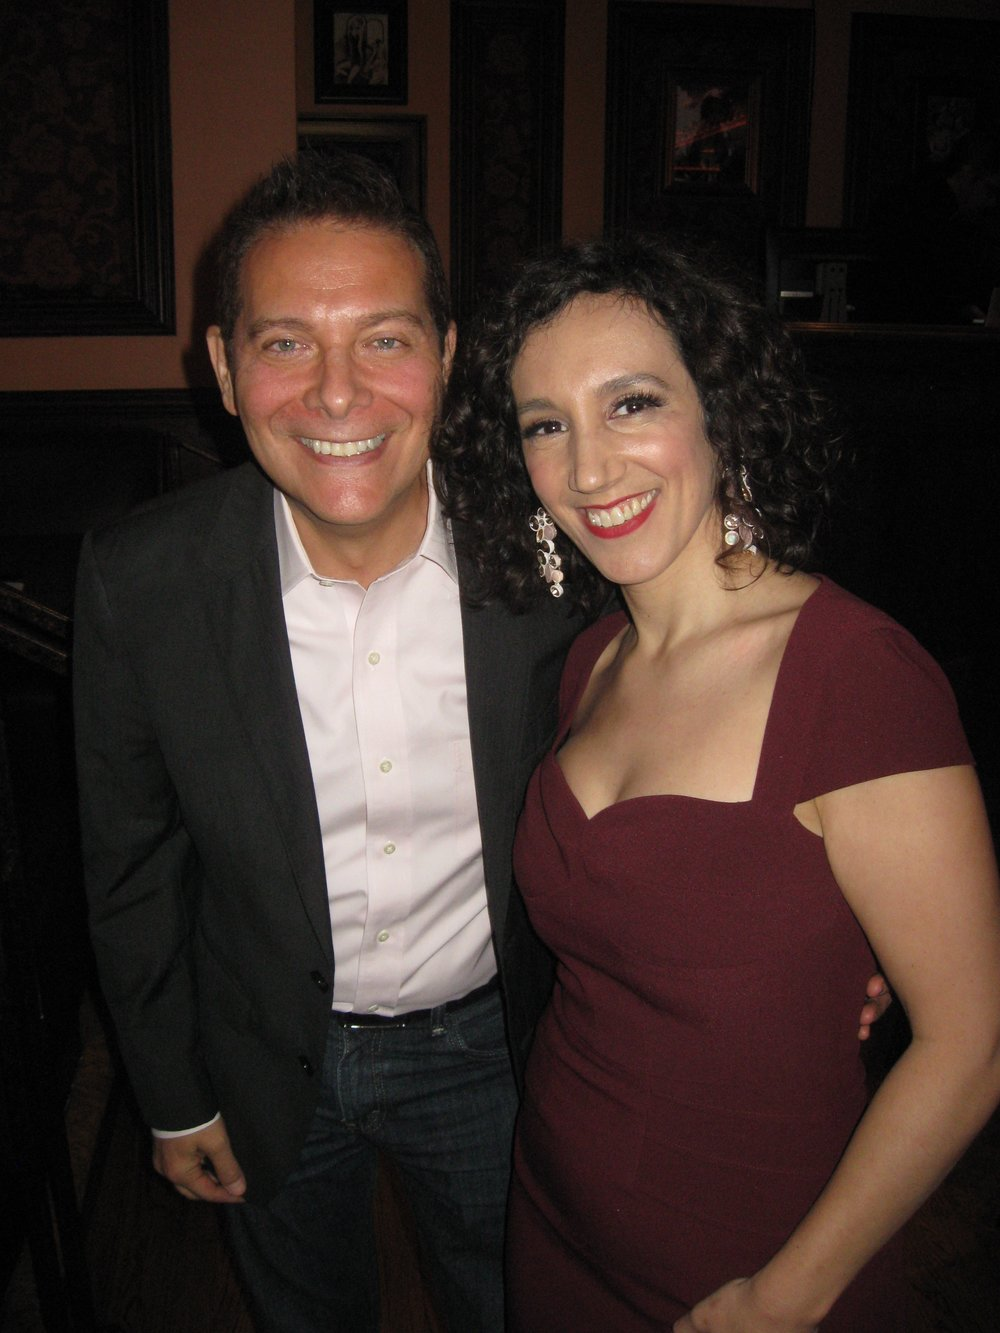 me and michael feinstein.jpg